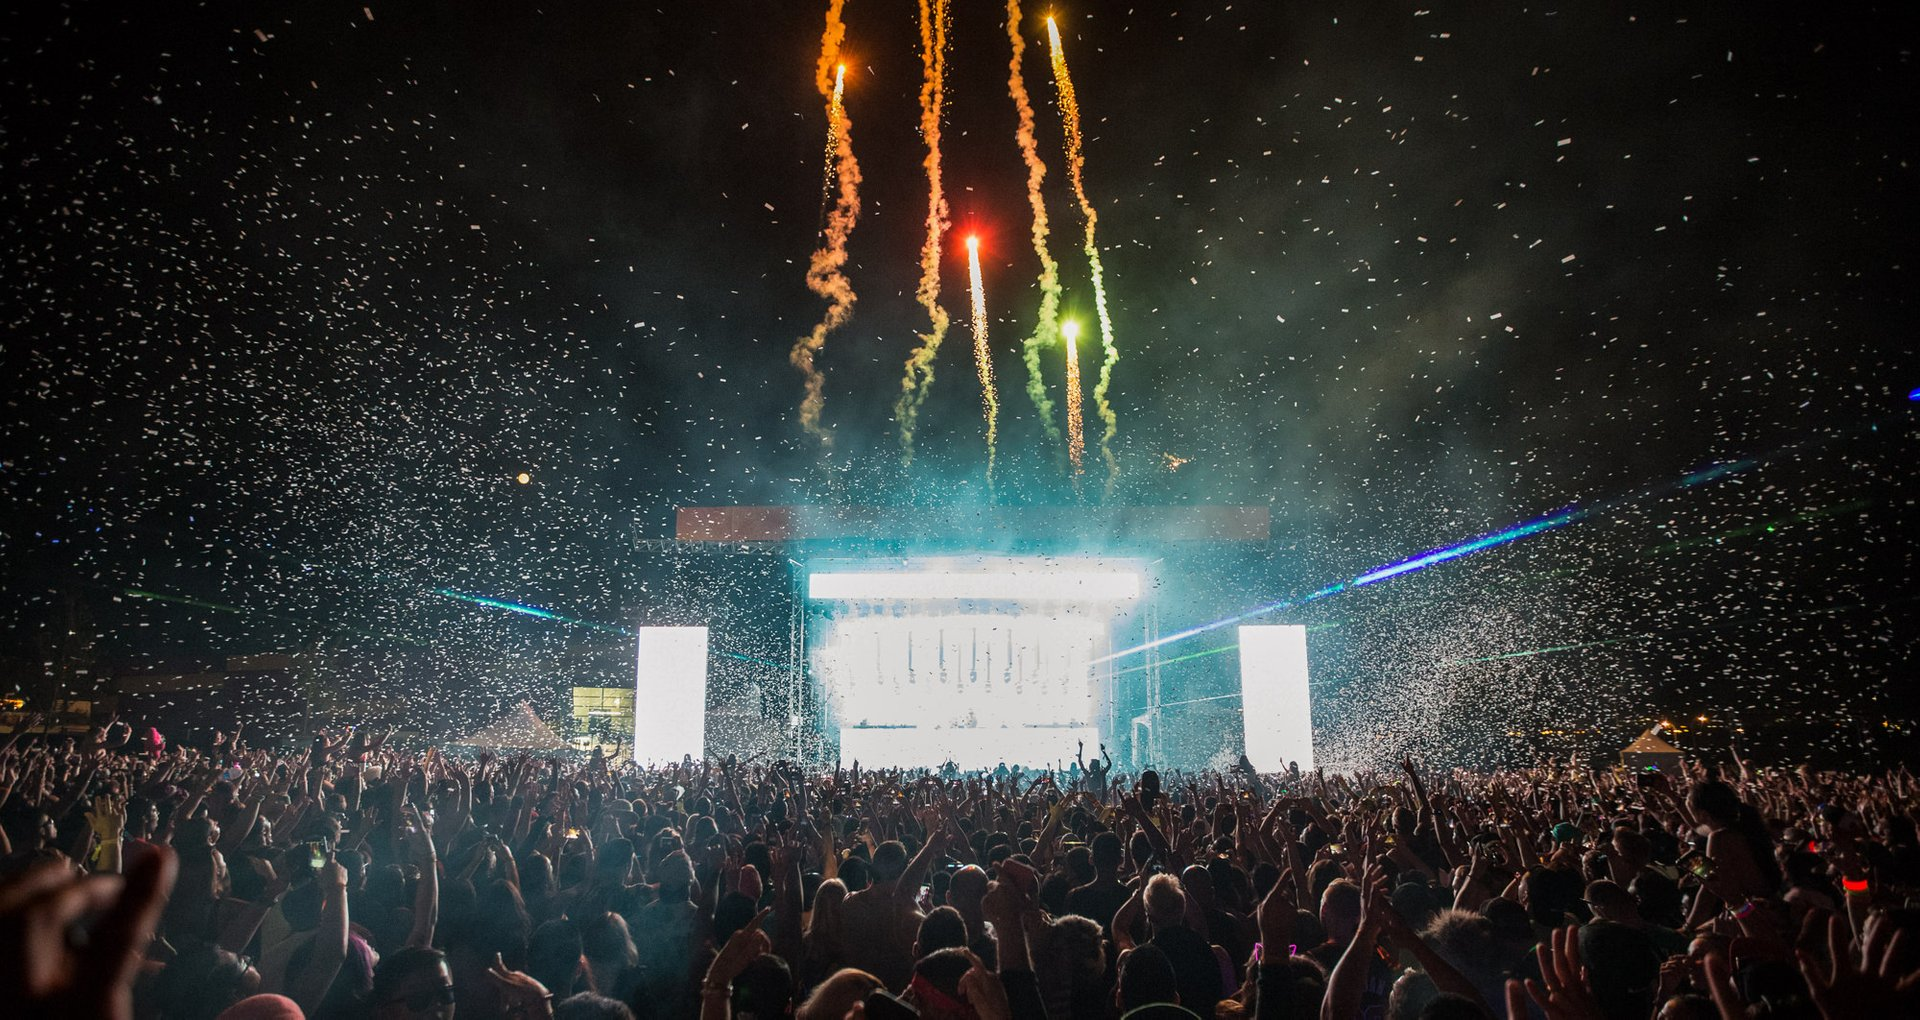 Best time for Chasing Summer Music Festival in Calgary 2020